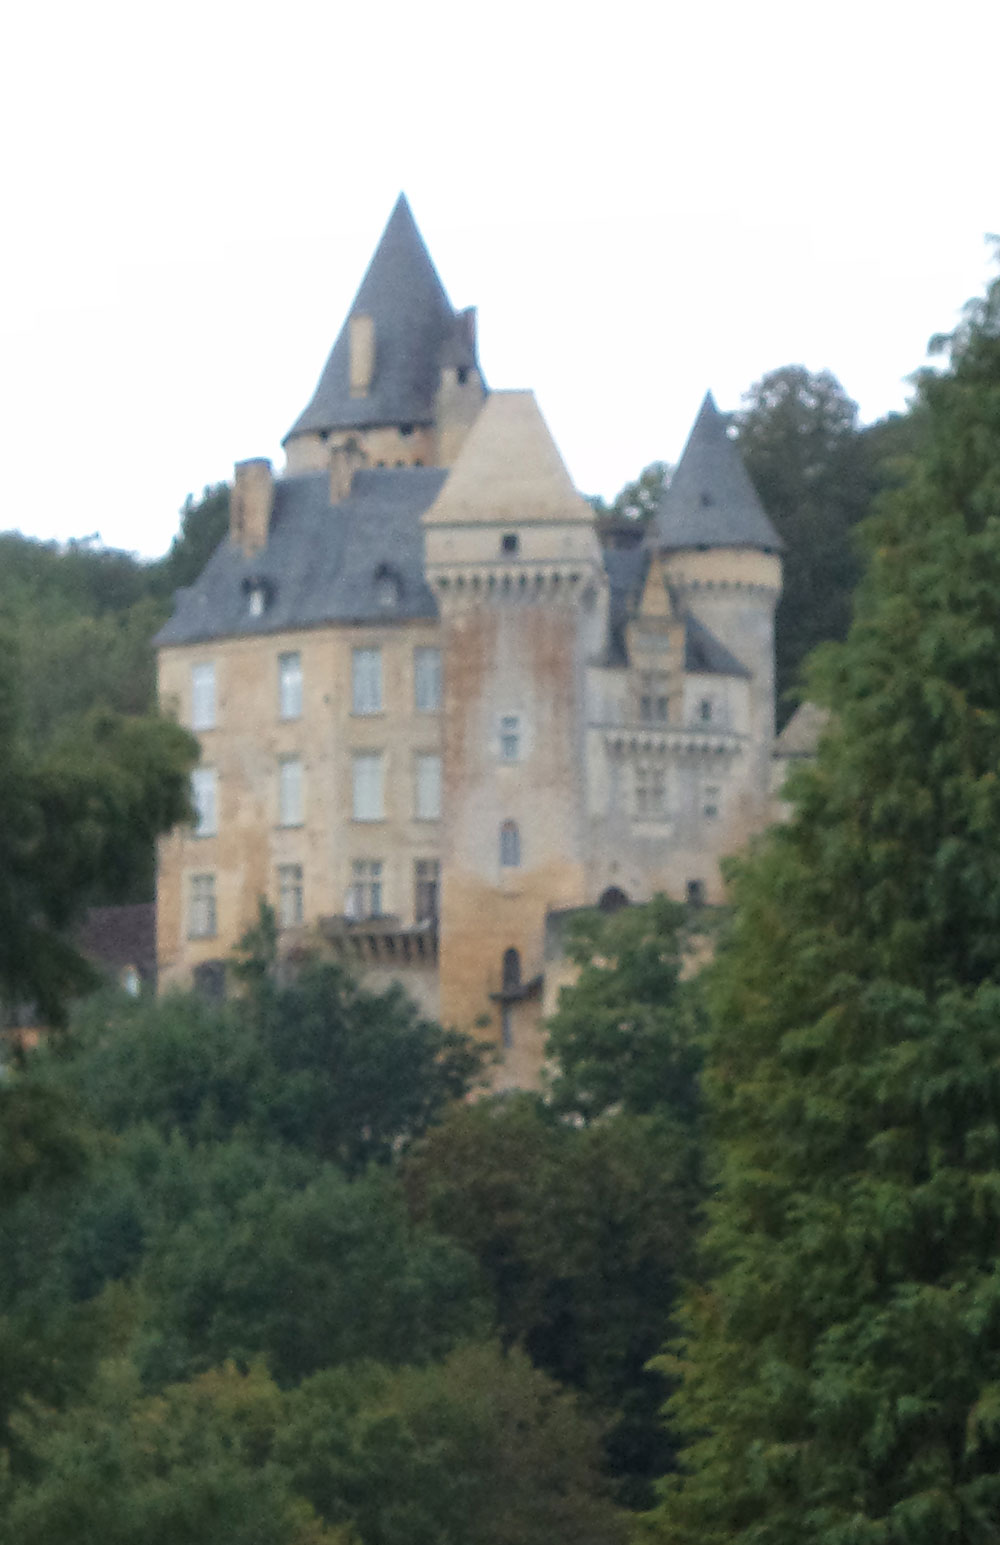 Passing stately chateaux…